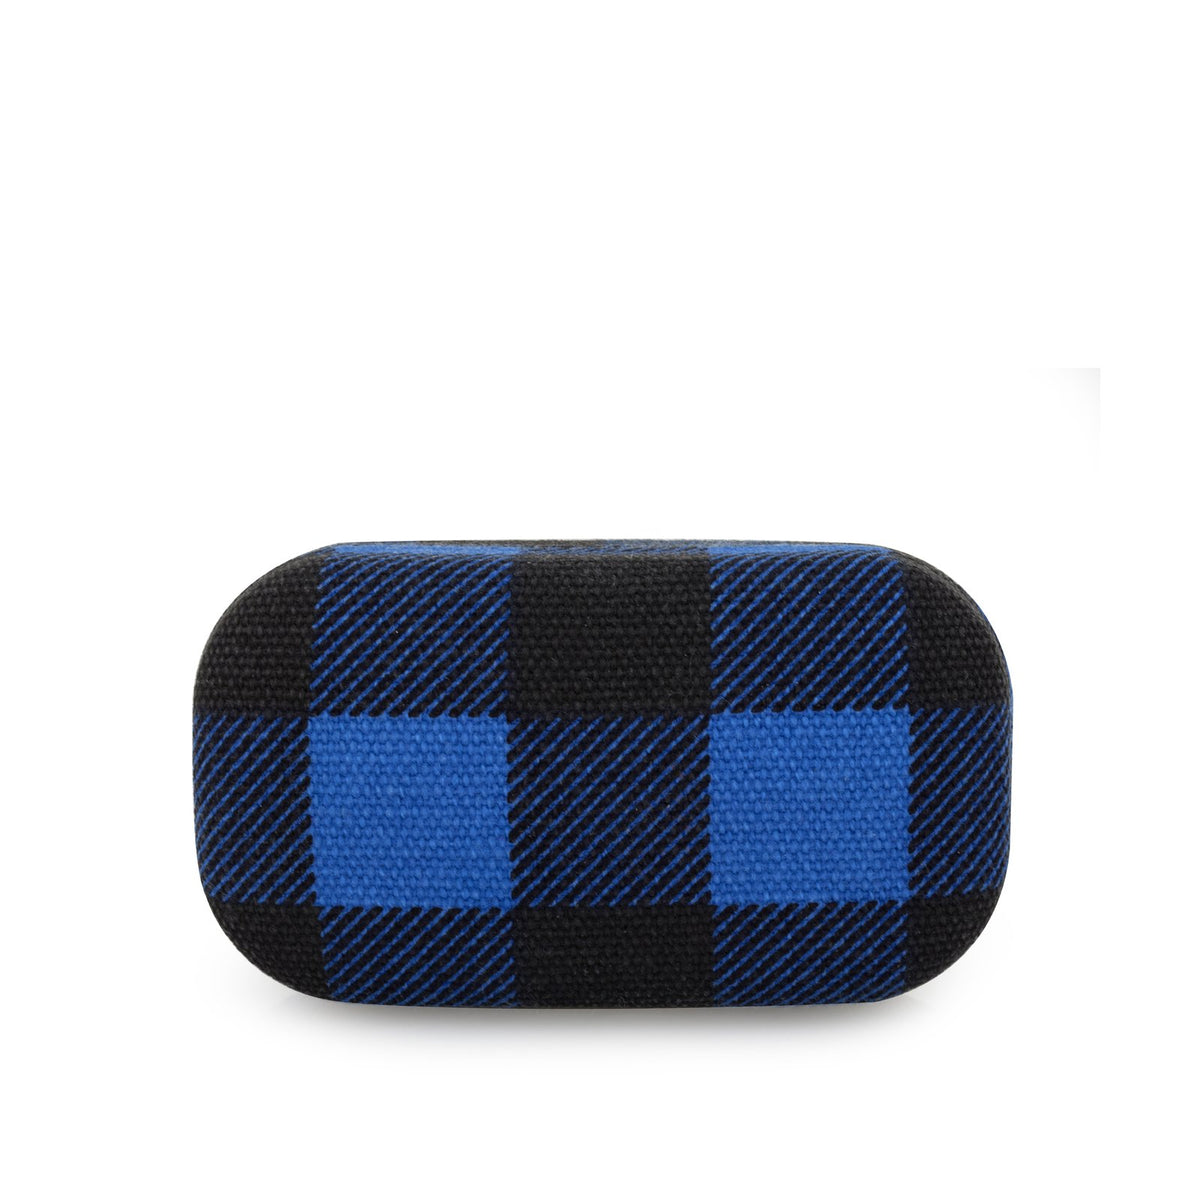 Buffalo Plaid Travel Accessories Case